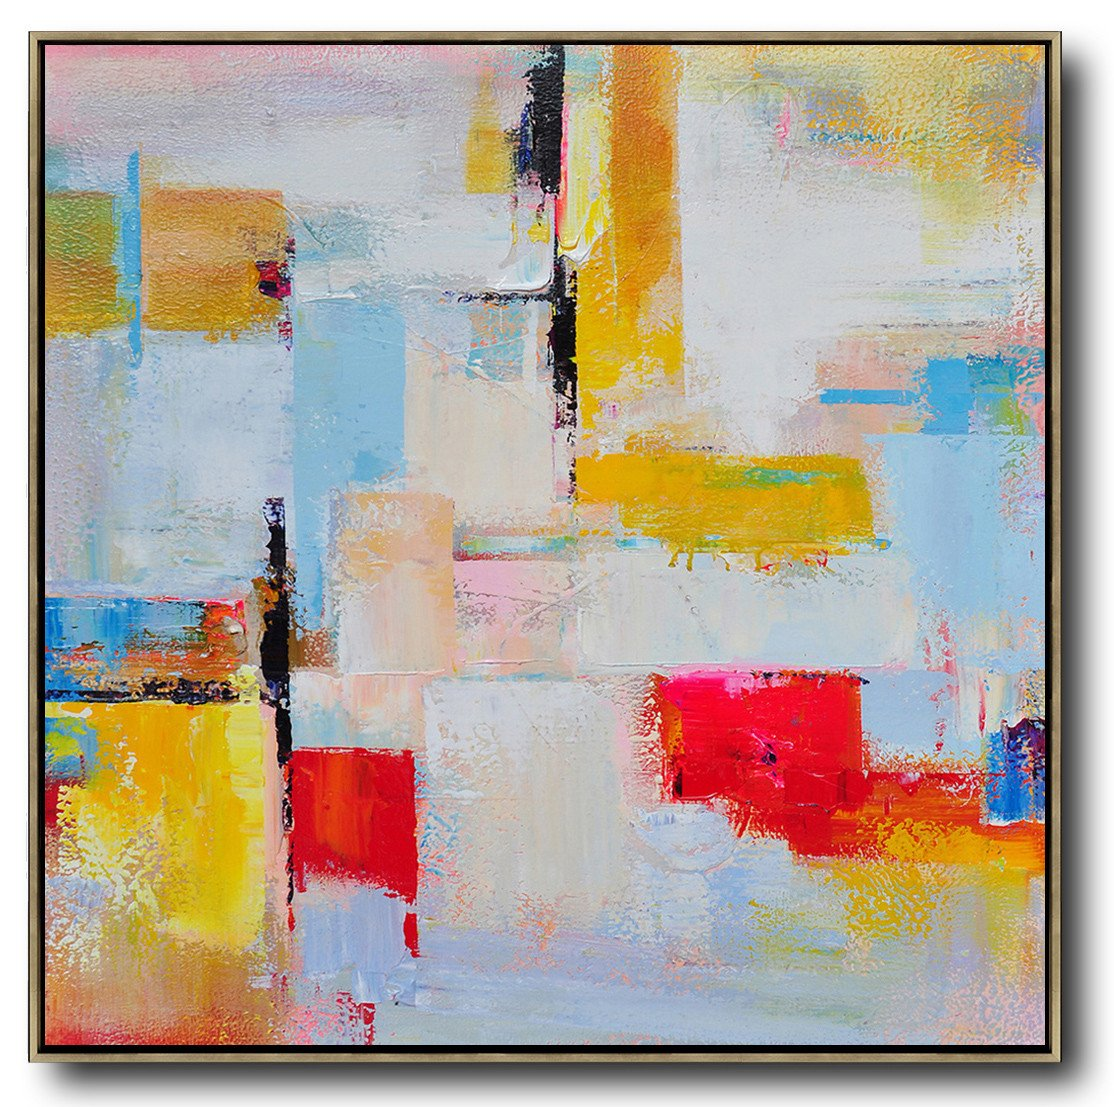 Large Abstract Painting Canvas Art,Oversized Palette Knife Painting Contemporary Art On Canvas,Canvas Painting Wall Decor,Grey,Yellow,Red,Sky Blue.etc